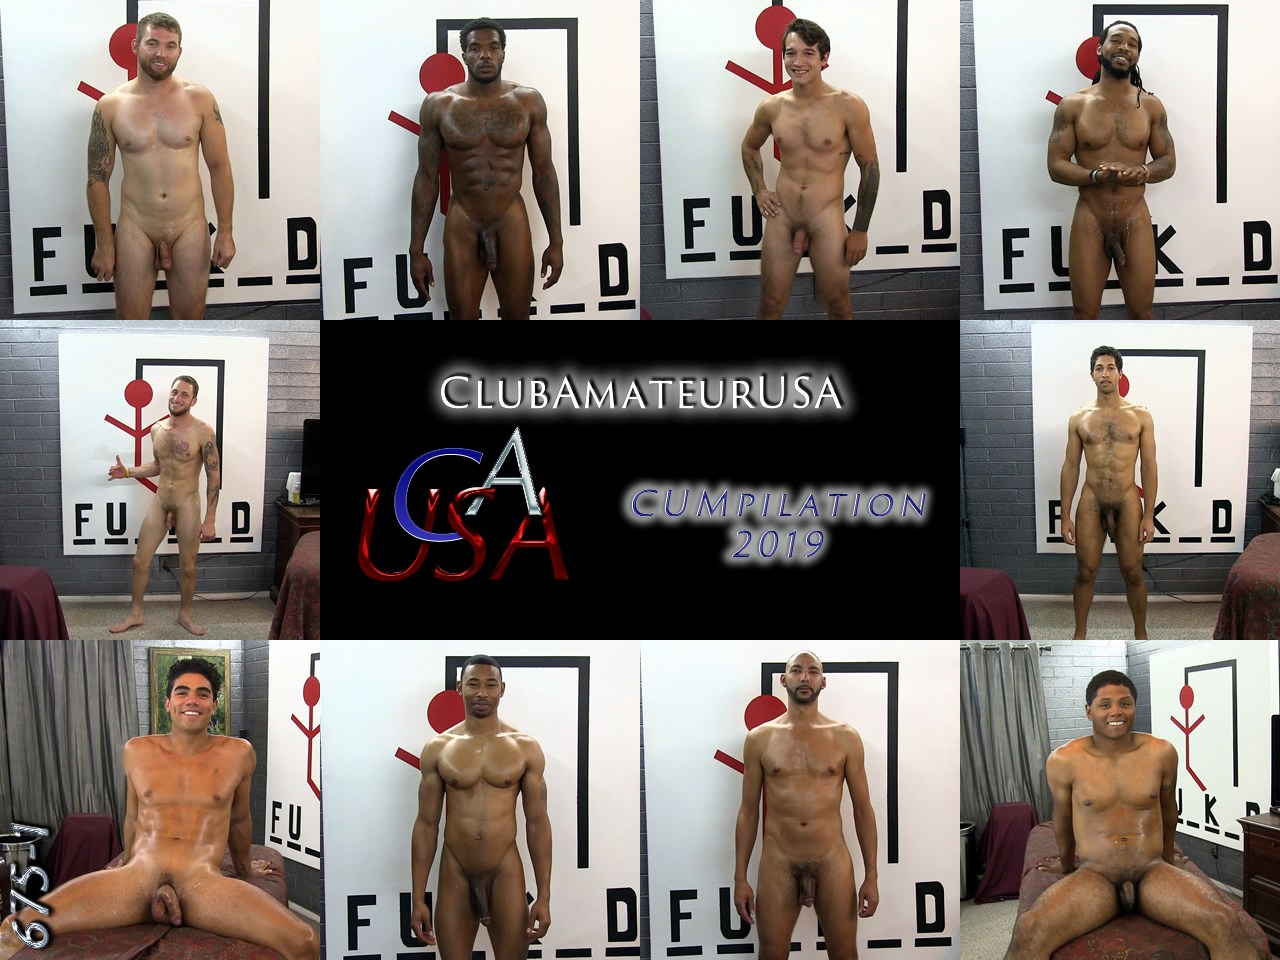 Download or Stream CAUSA 675 CUMpilation 2019 - 1 of 4 - Click Here Now